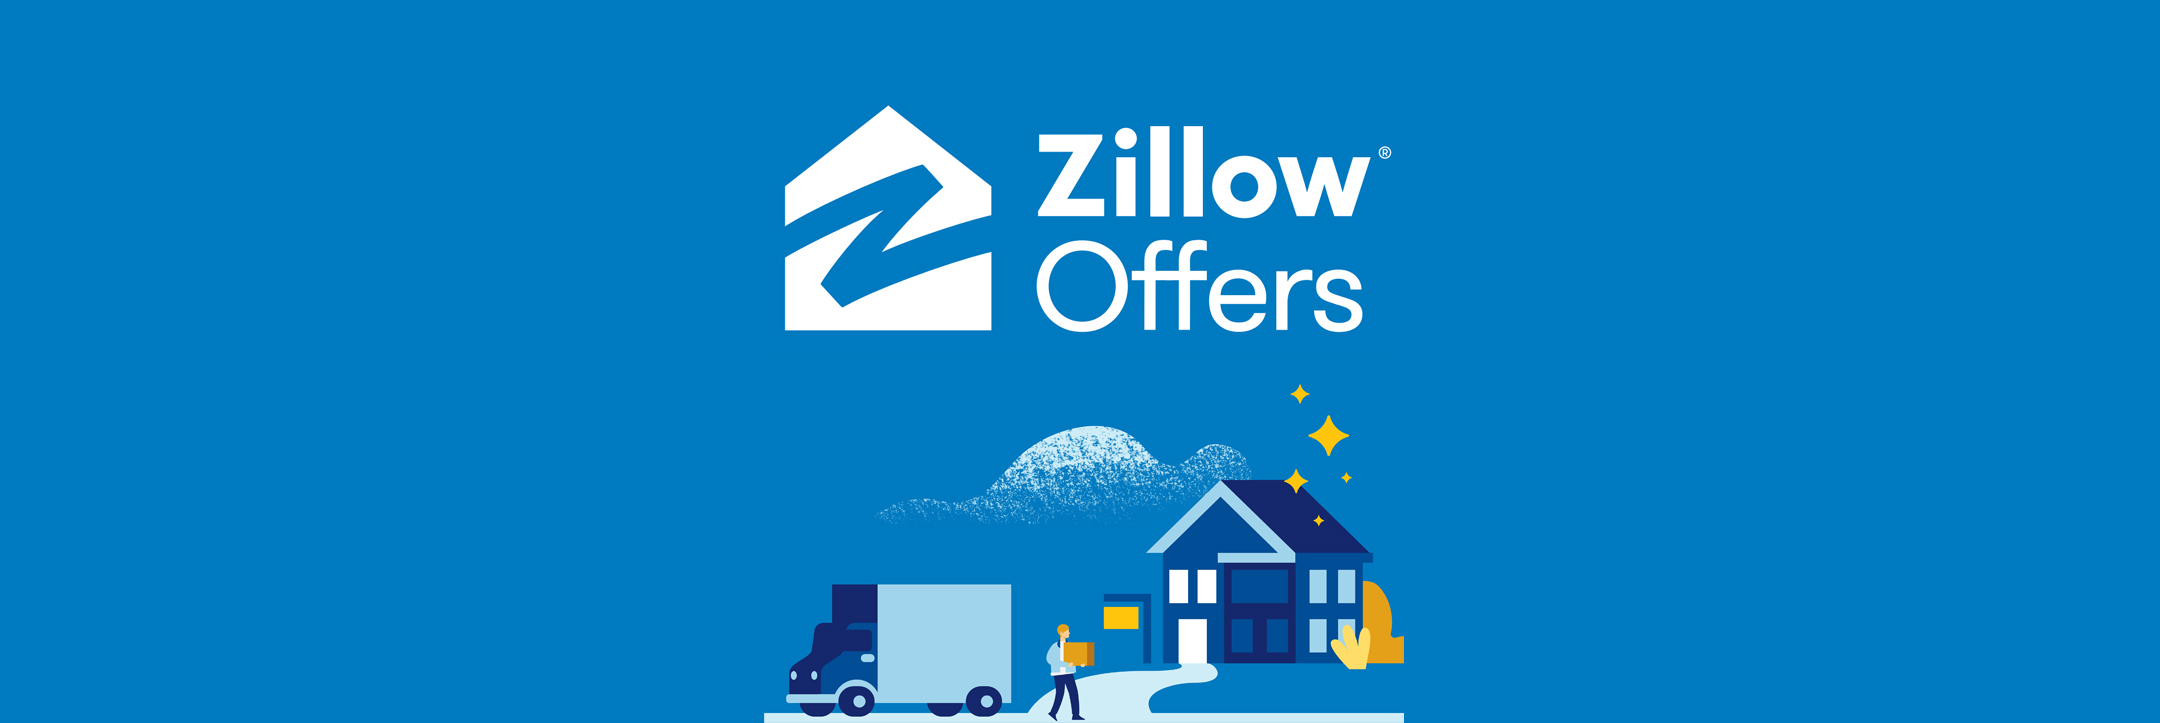 Zillow Offers Header Image